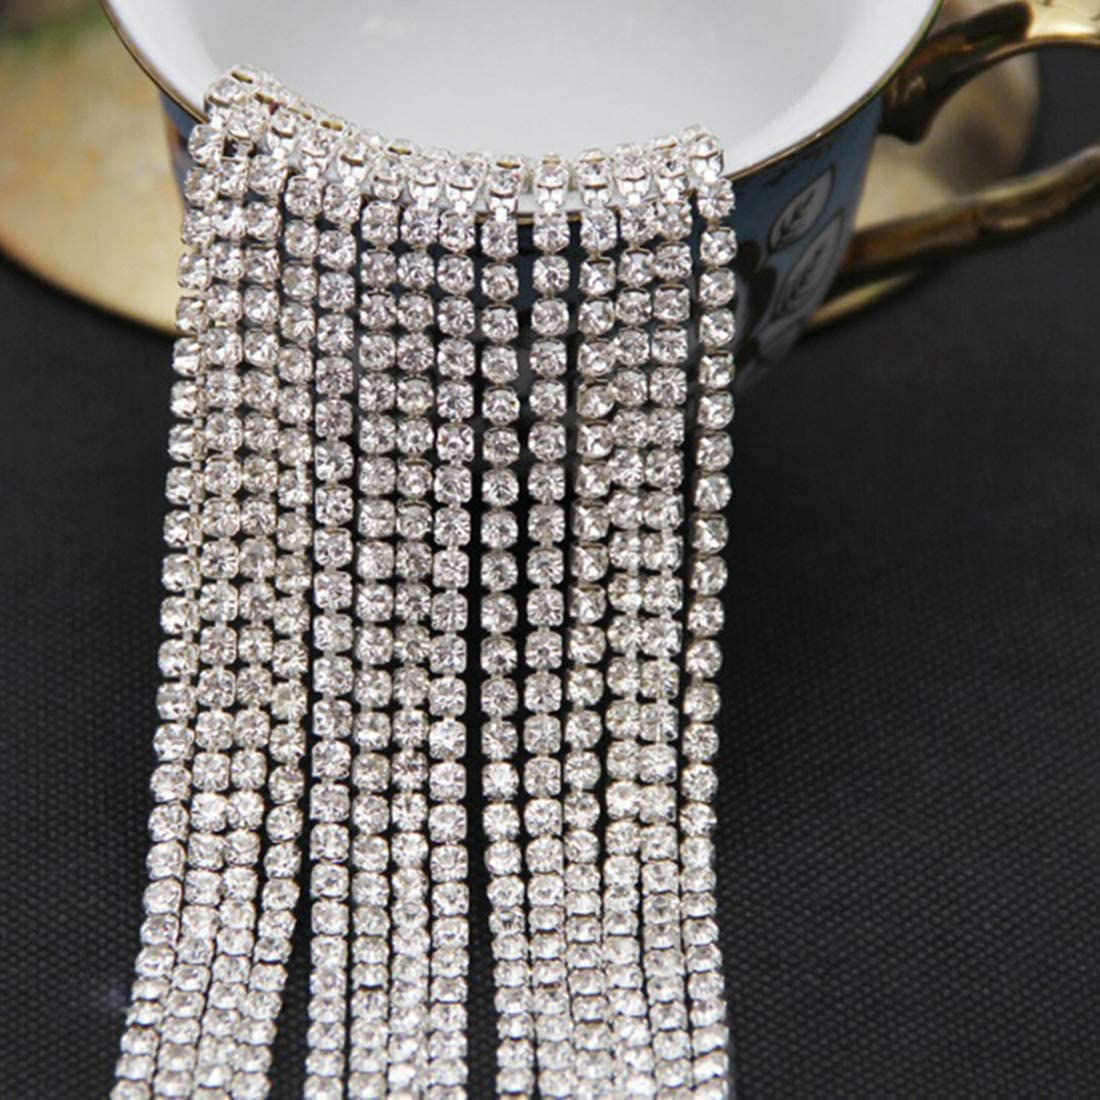 Gold, SS8 30 Feet 10 Yards Crystal Rhinestone Close Chain Sewing Craft Trimming Gold Claw Chain DIY Jewelry Crafts Wedding Party Decoration